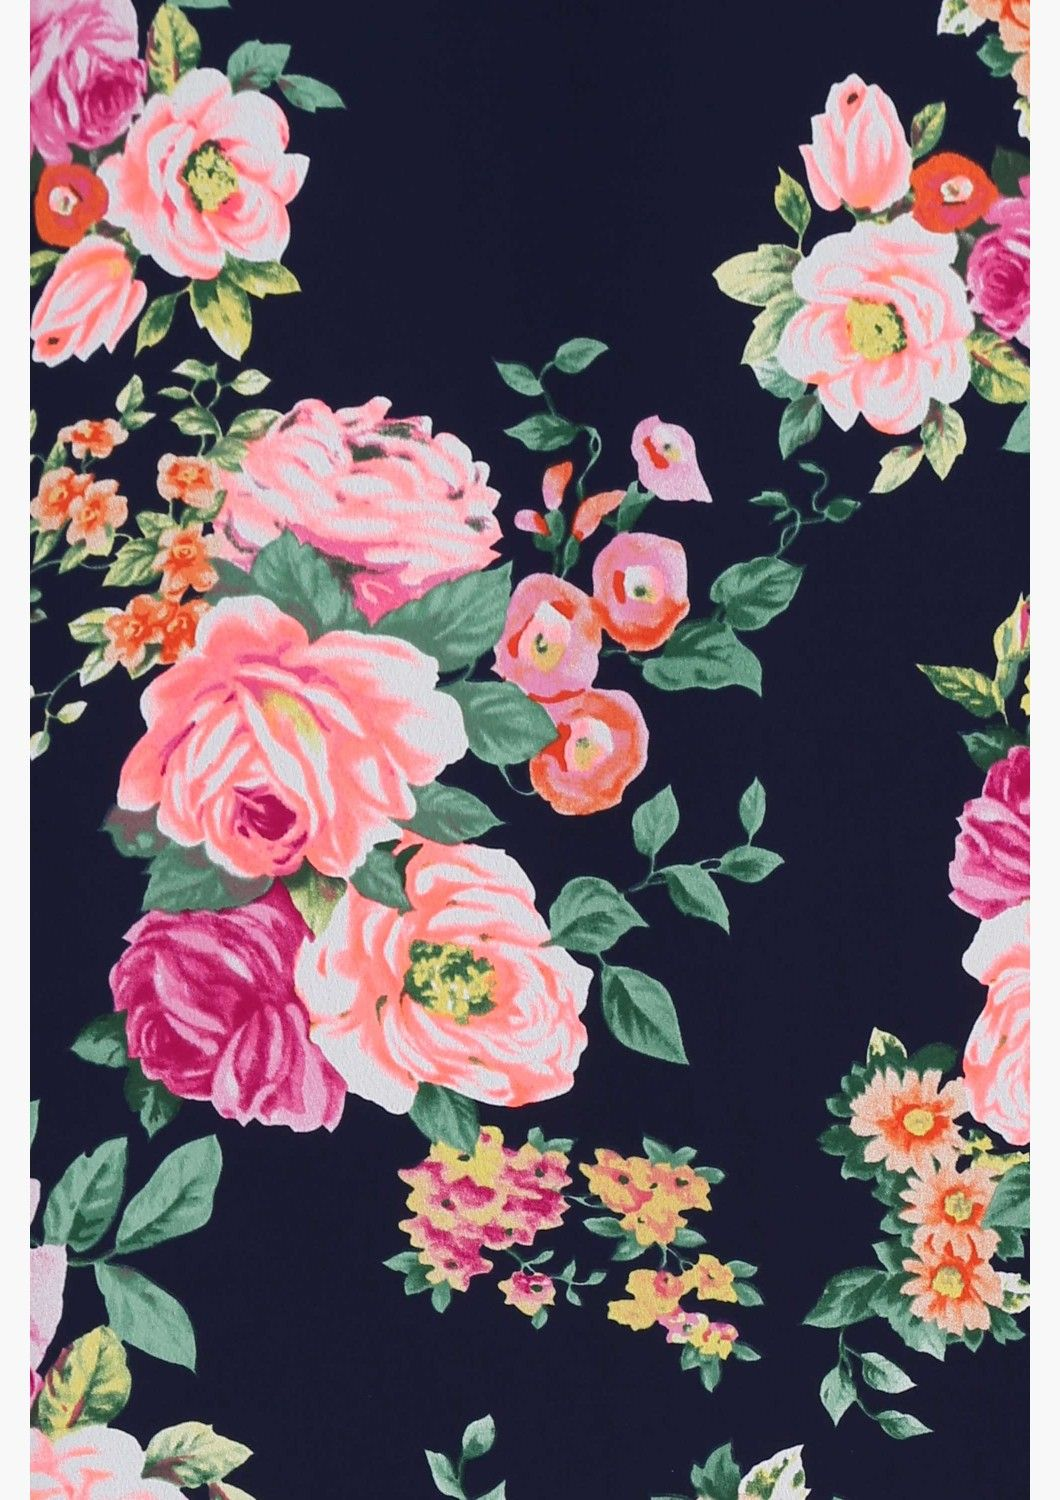 Flowers Pattern wallpaper, Floral prints, Floral pattern